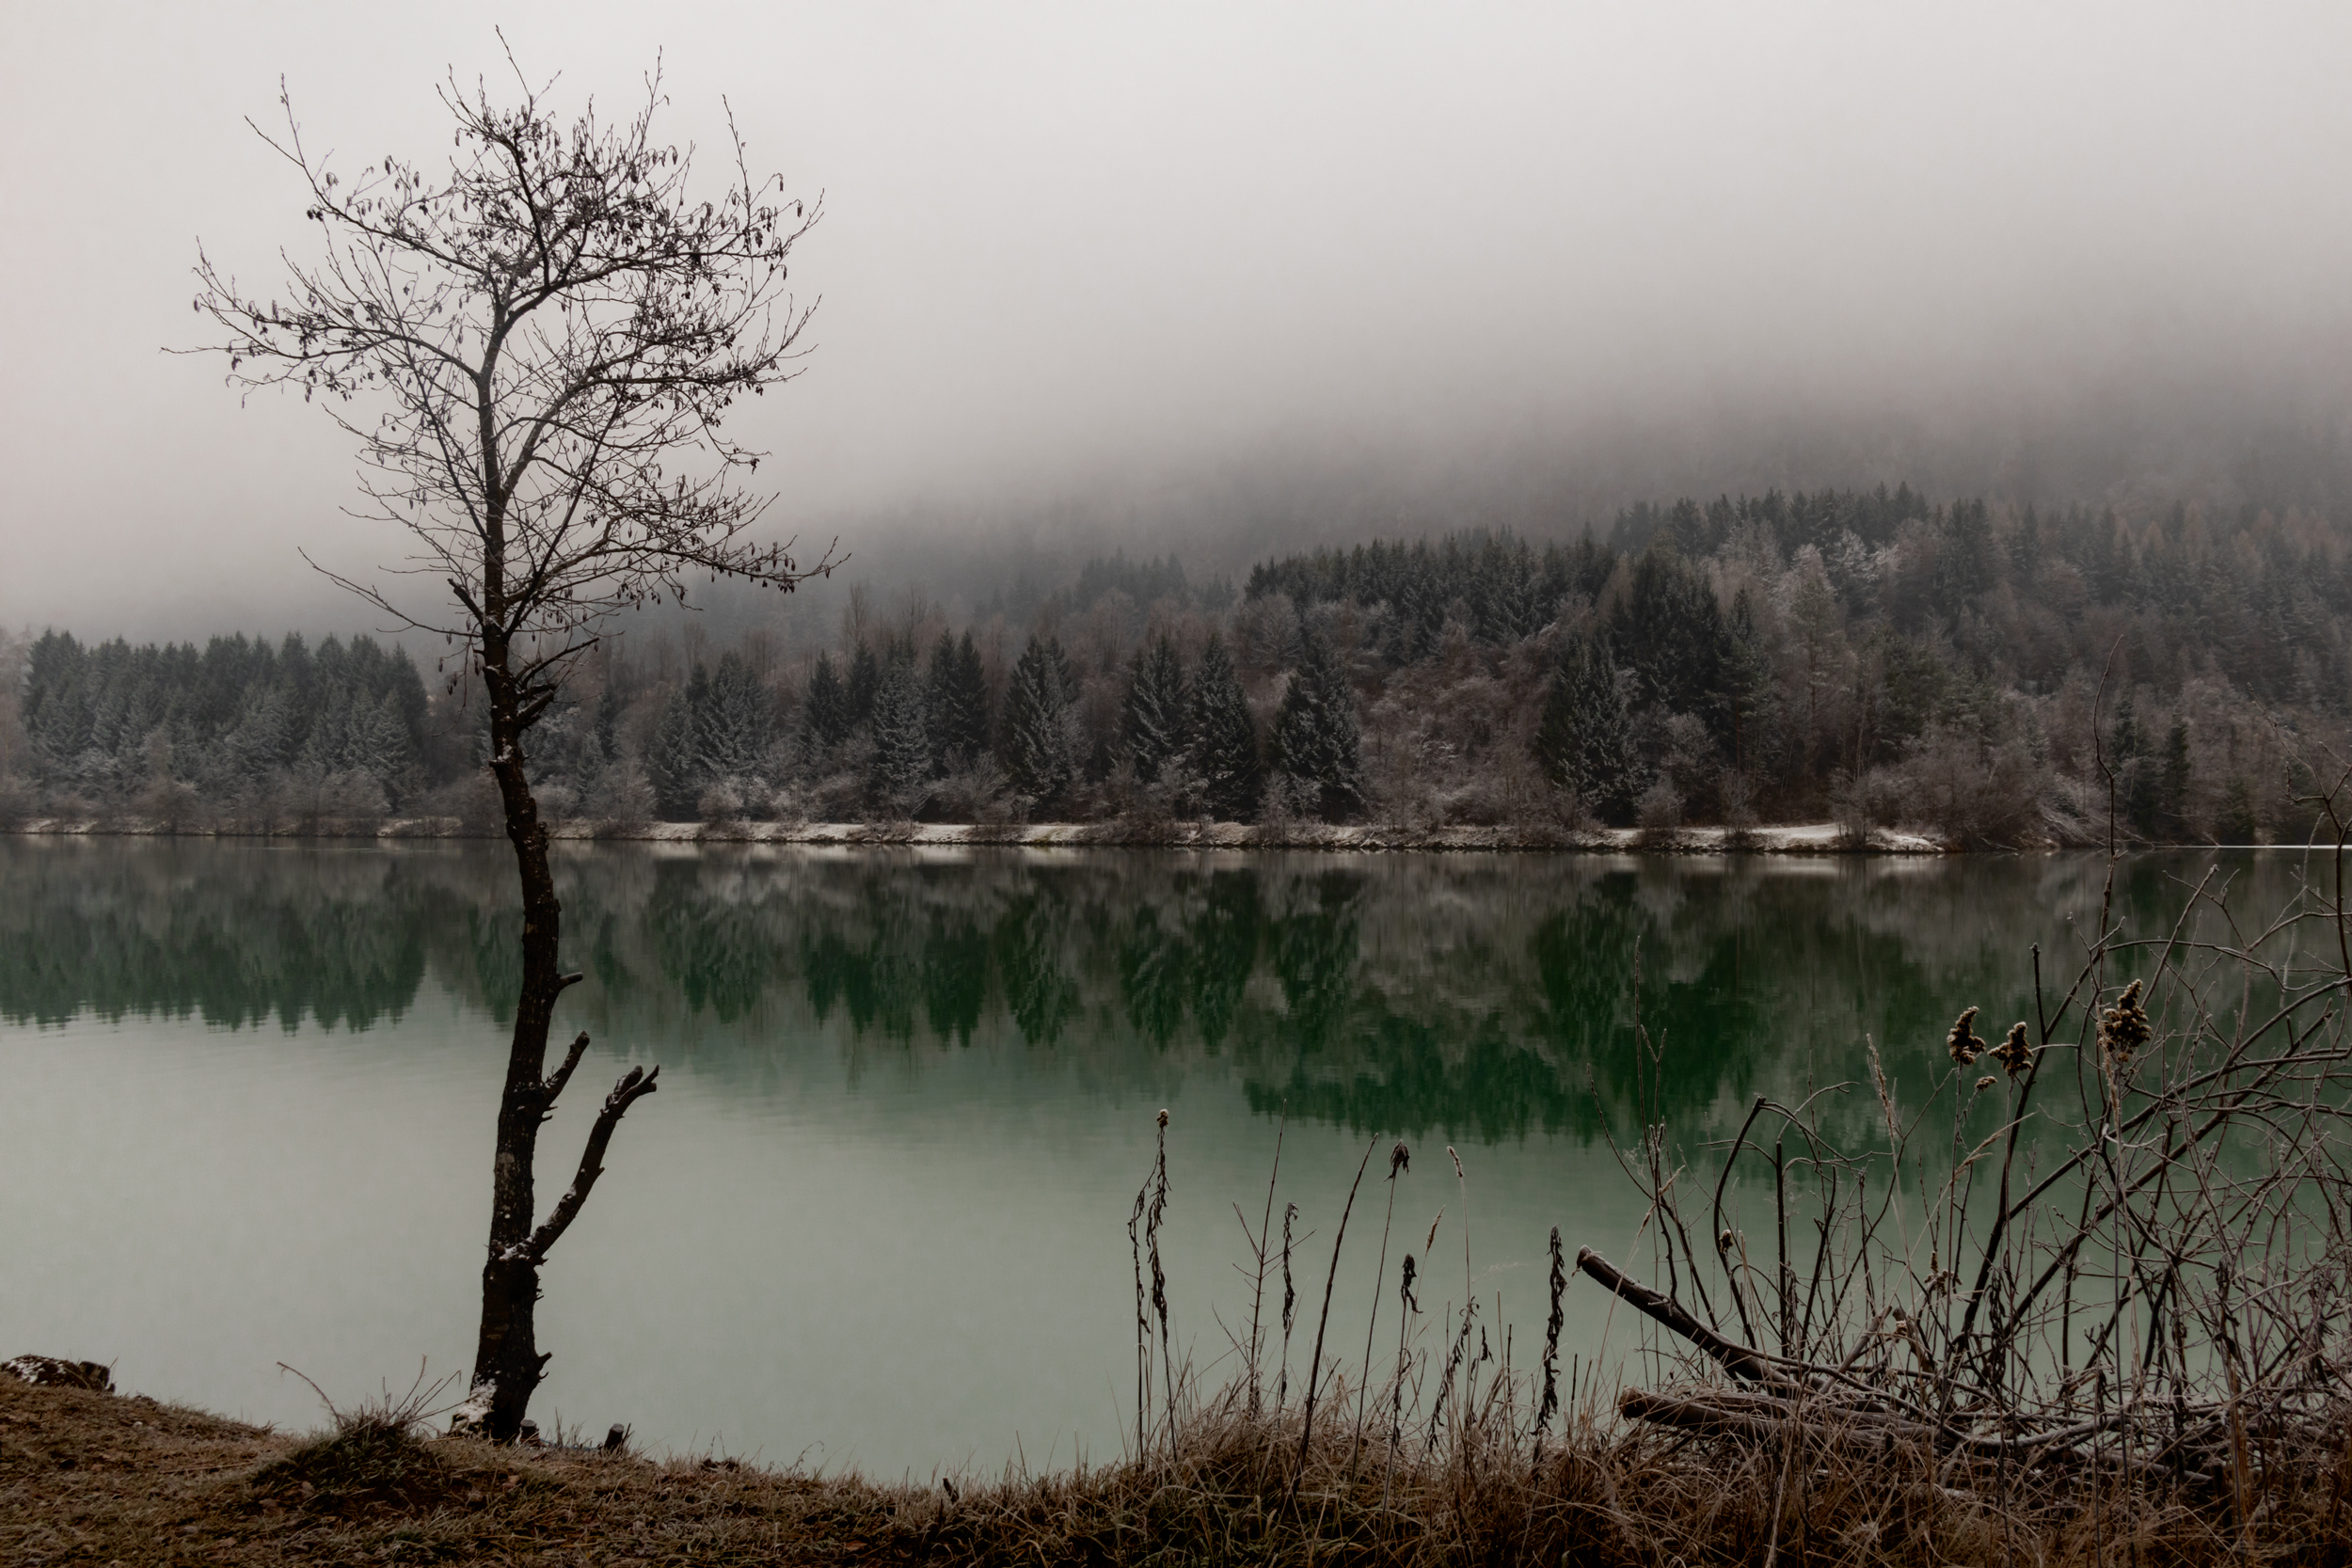 Misty Morning at the Drau River